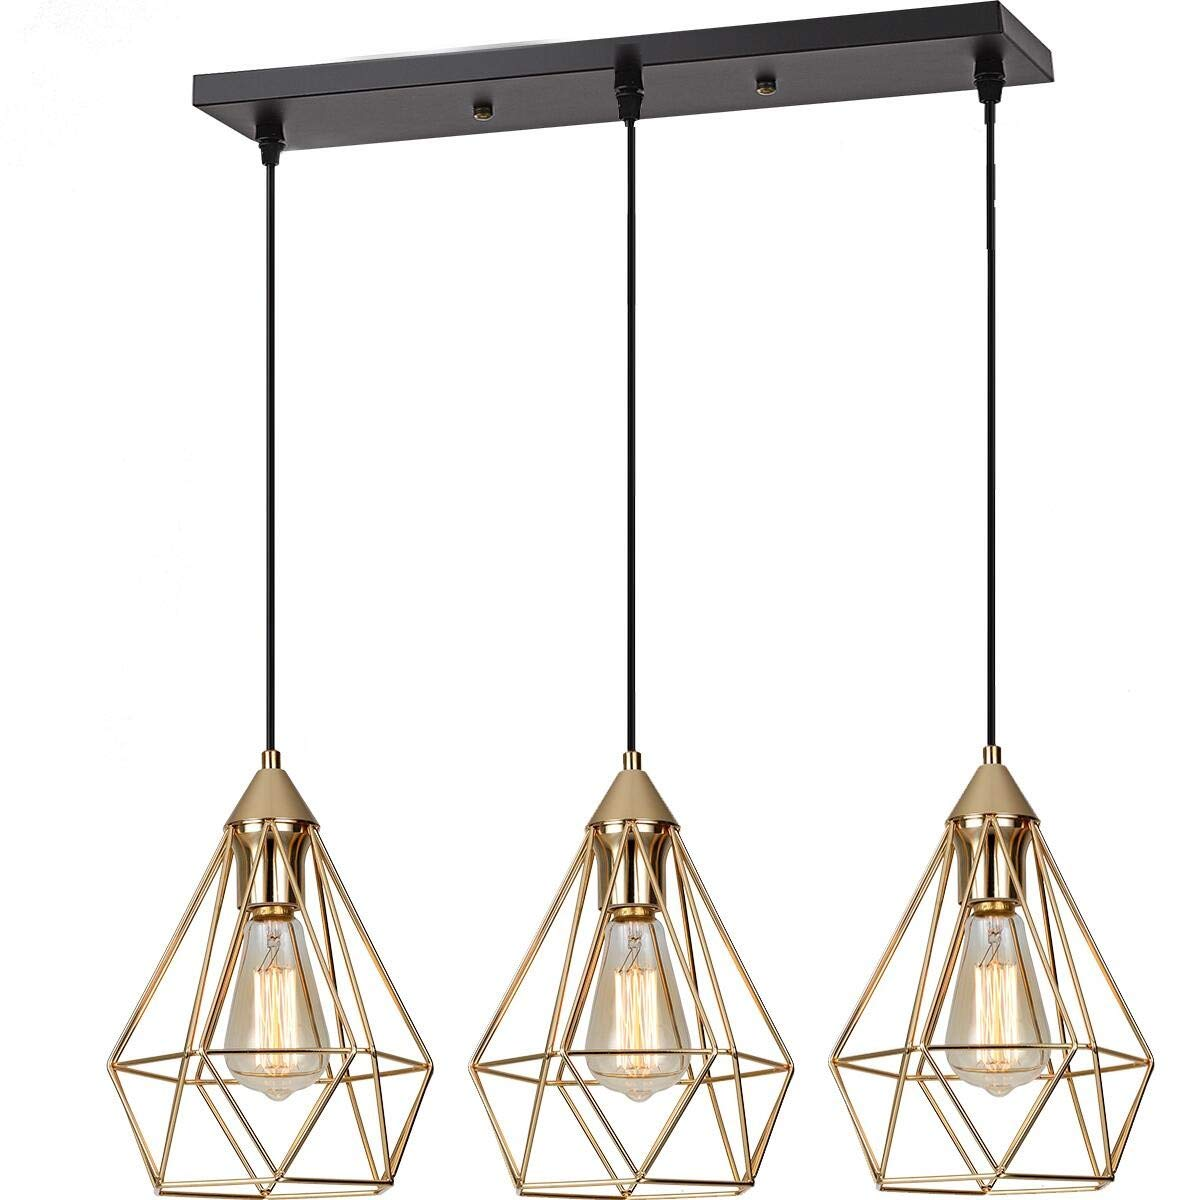 SEEBLEN 3- Light Indoor Island Pendant Light Gold Metal Hanging Ceiling Light Fixtures for Kitchen Kitchen Island Bar Dining Room Farmhouse Coffee Office